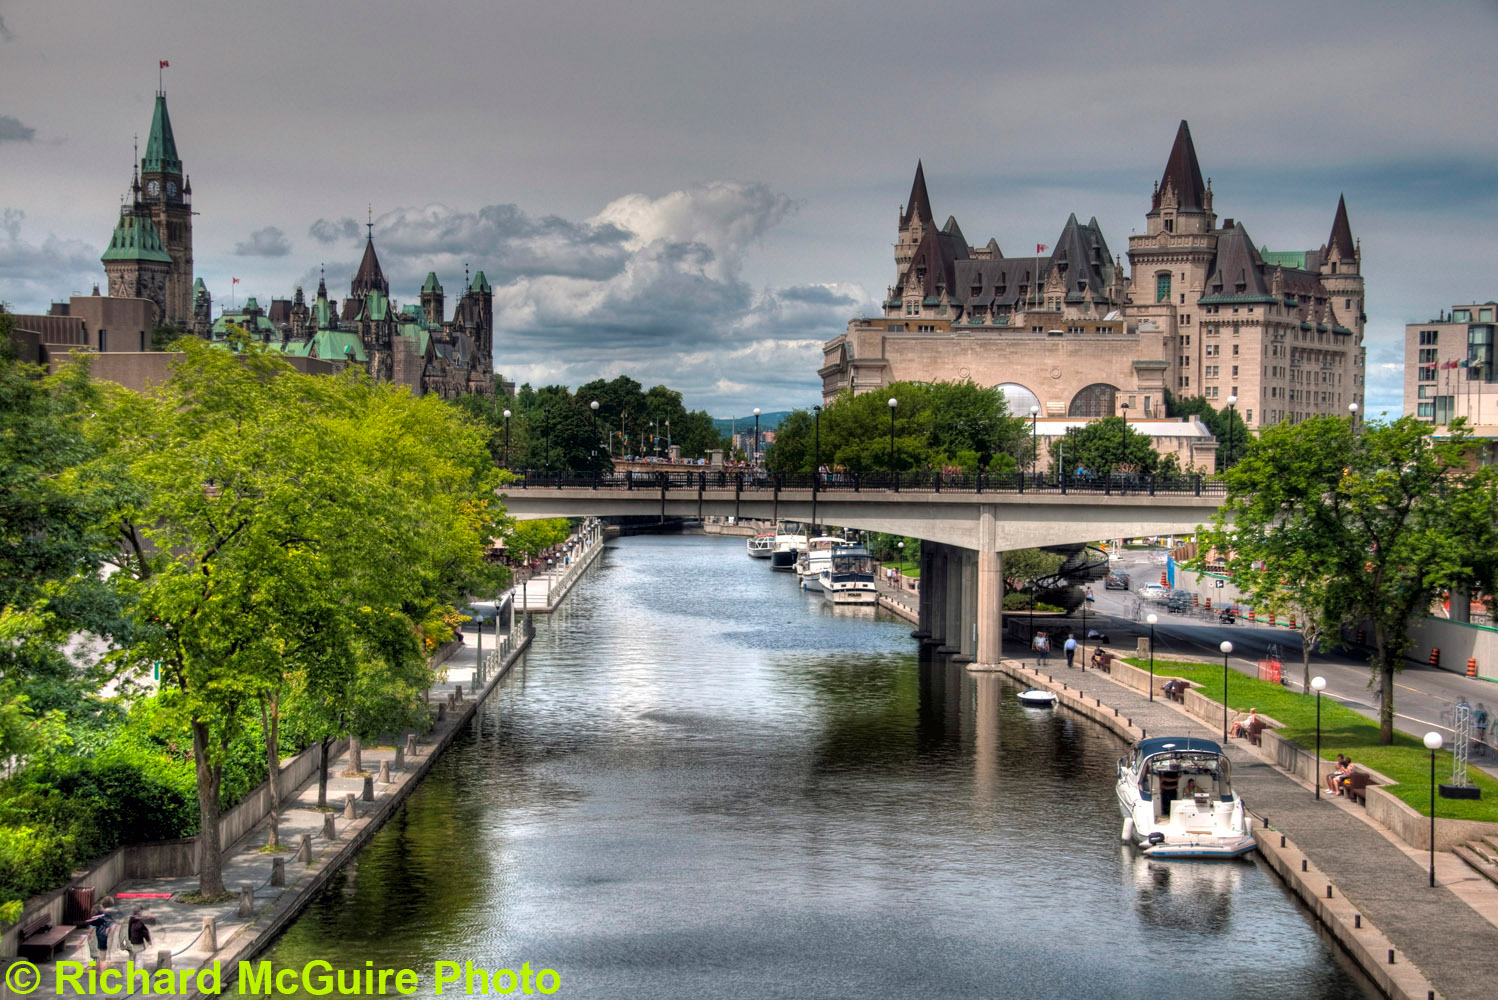 rideau canal Cruise the rideau canal, a chain of lakes, rivers and locks extending 202 km from kingston, at the east end of lake ontario to ottawa, canada's capital city.